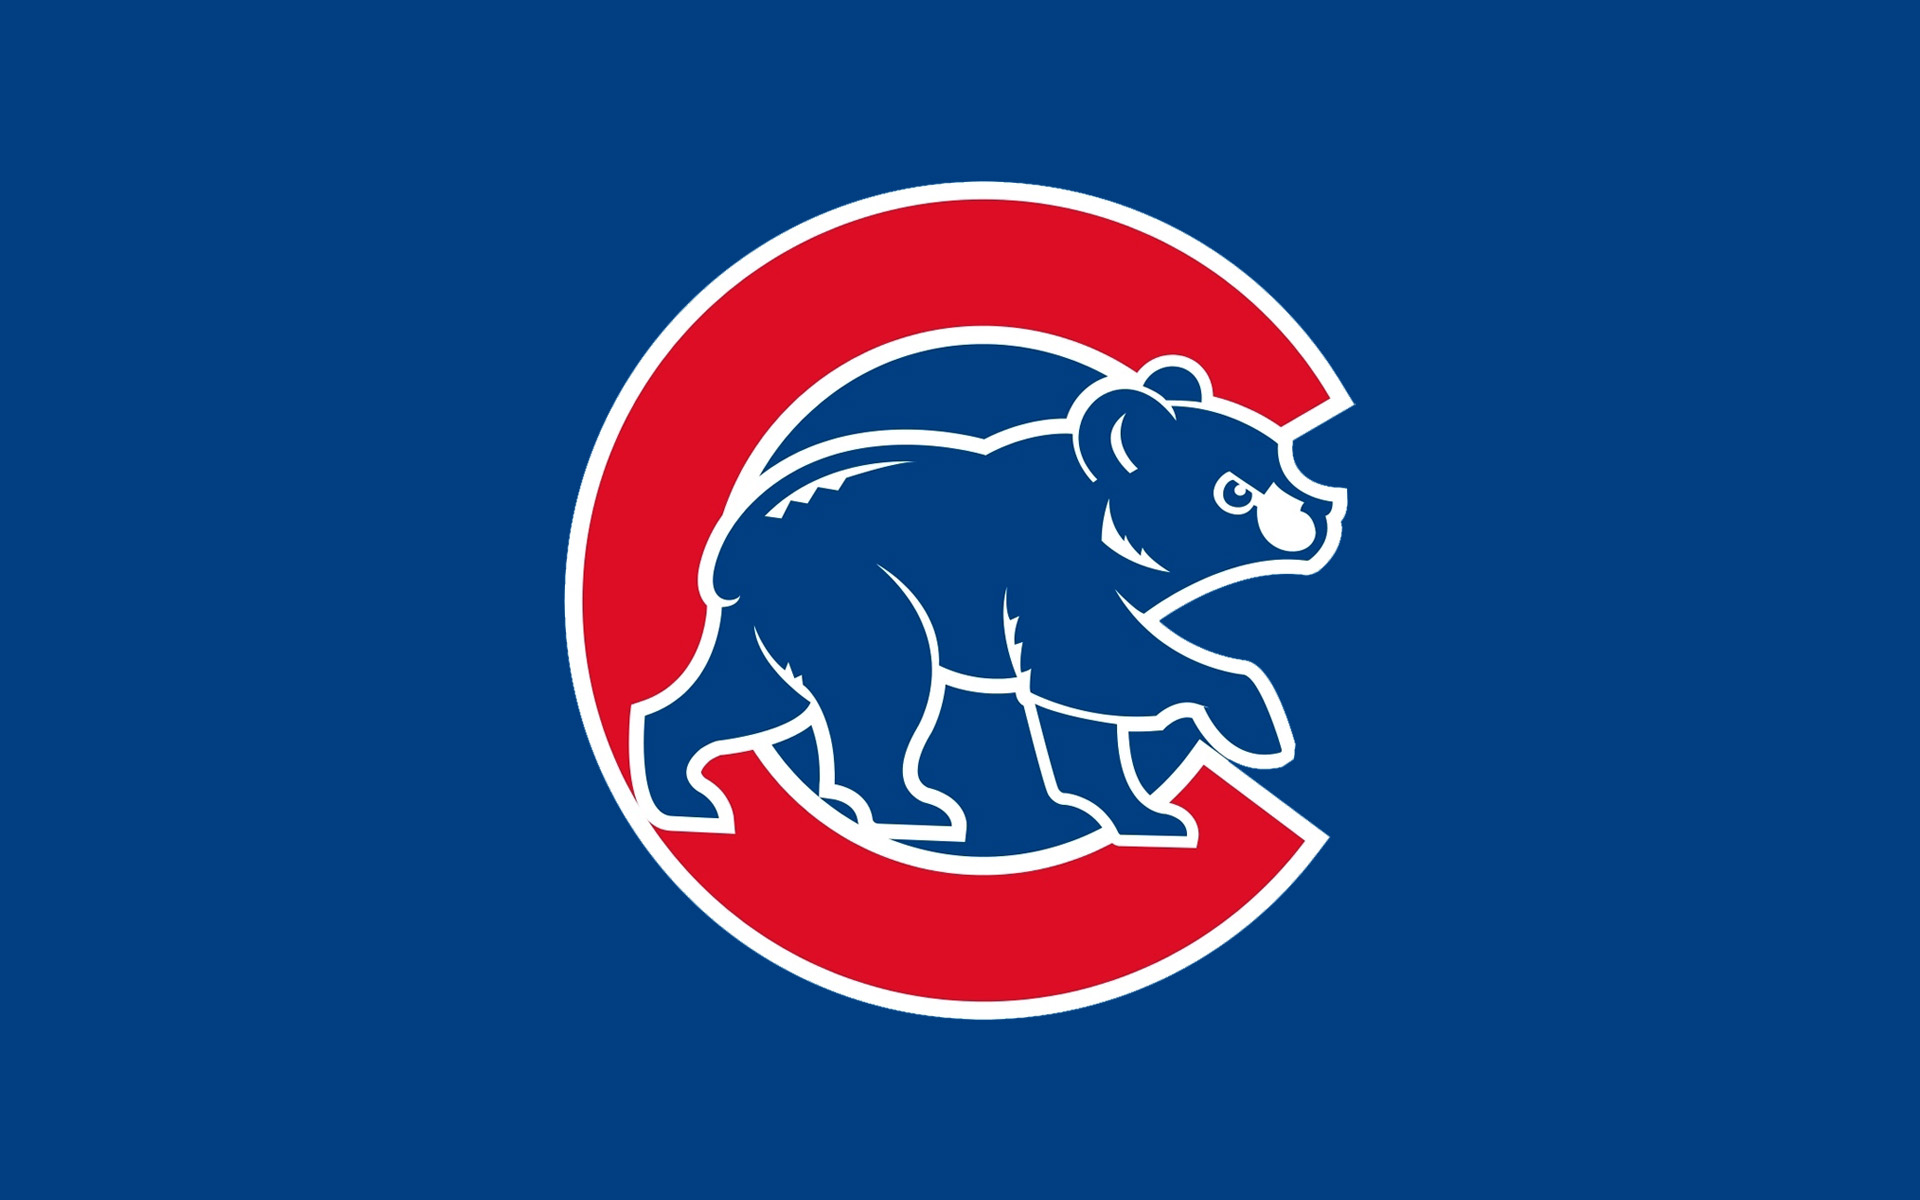 Awesome Chicago Cubs wallpaper Chicago Cubs wallpapers 1920x1200